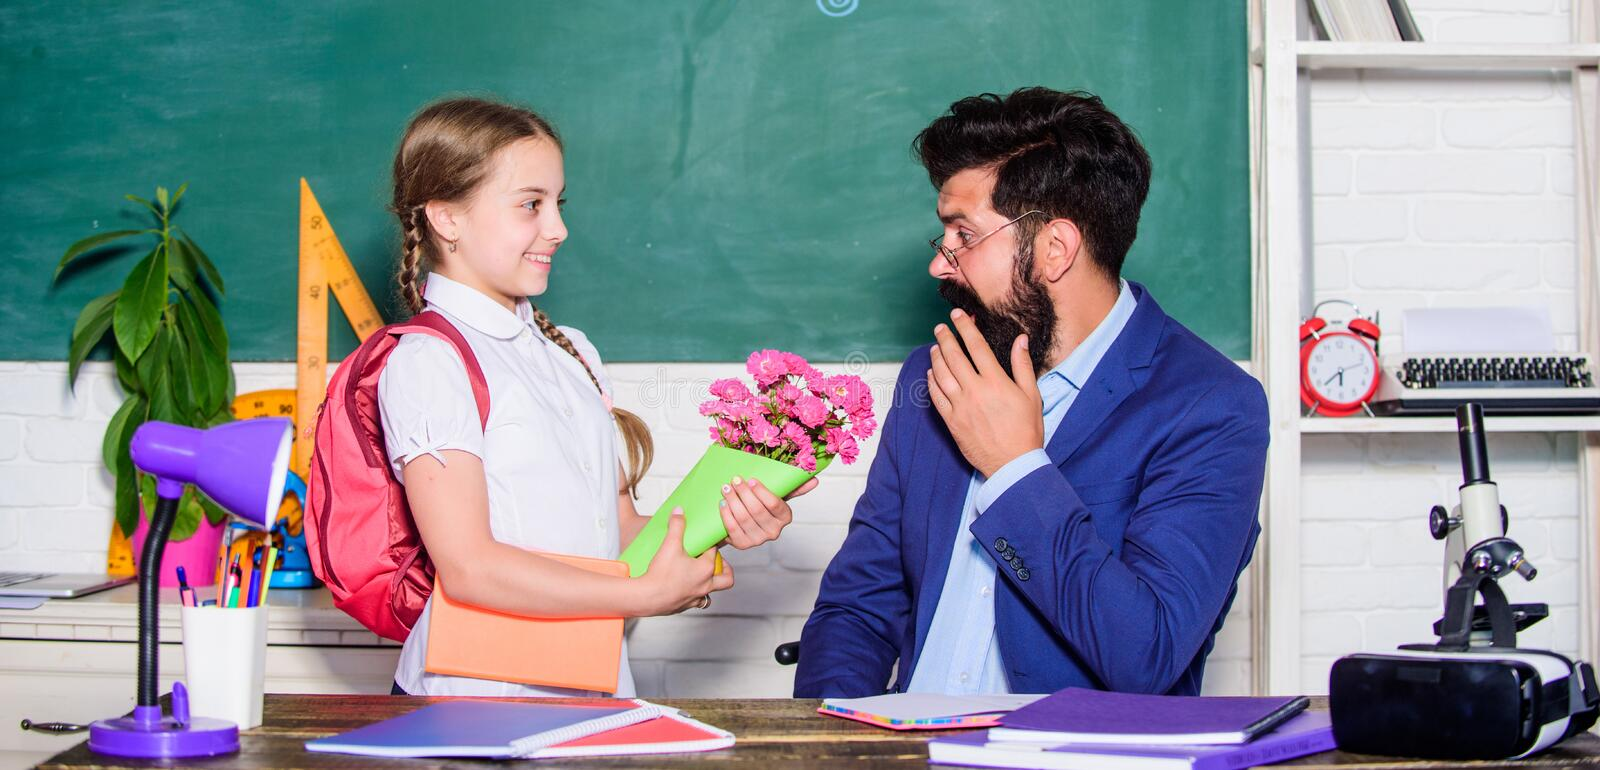 Back to school. Happy teachers day. small school girl kid with flower bouquet. flower present for best teacher royalty free stock photo